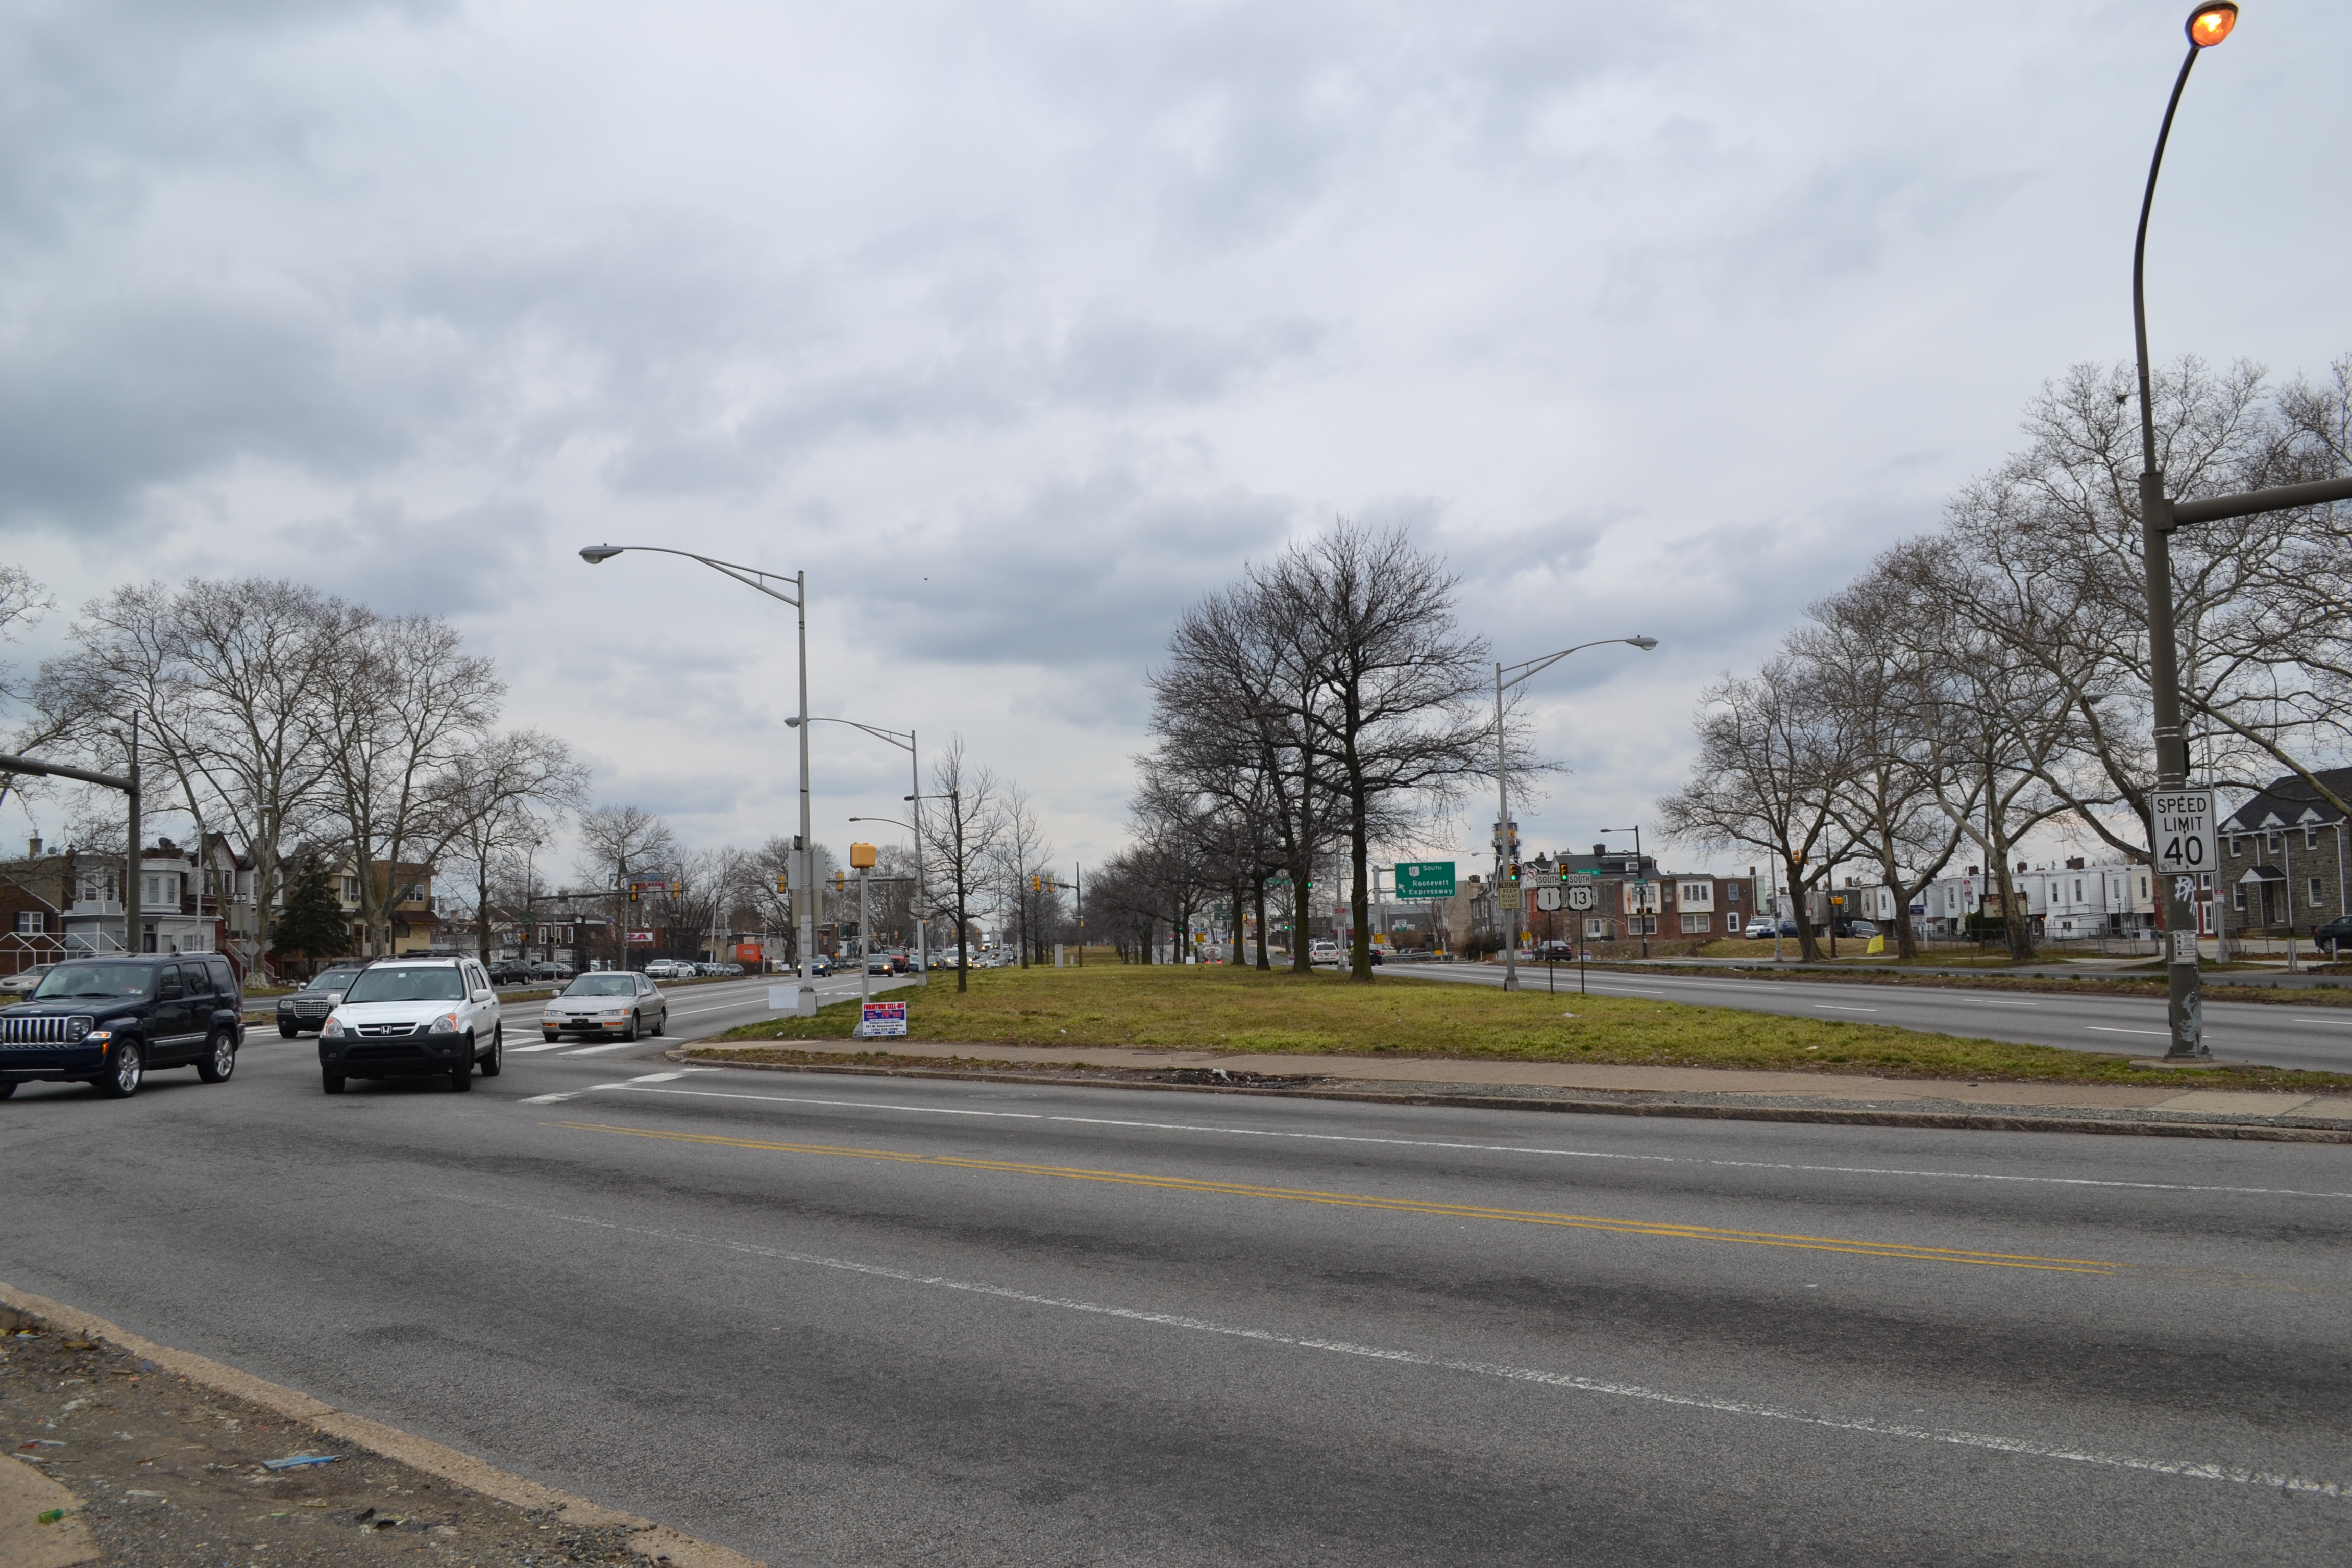 The 12-lane Boulevard has an 80-foot-wide central median